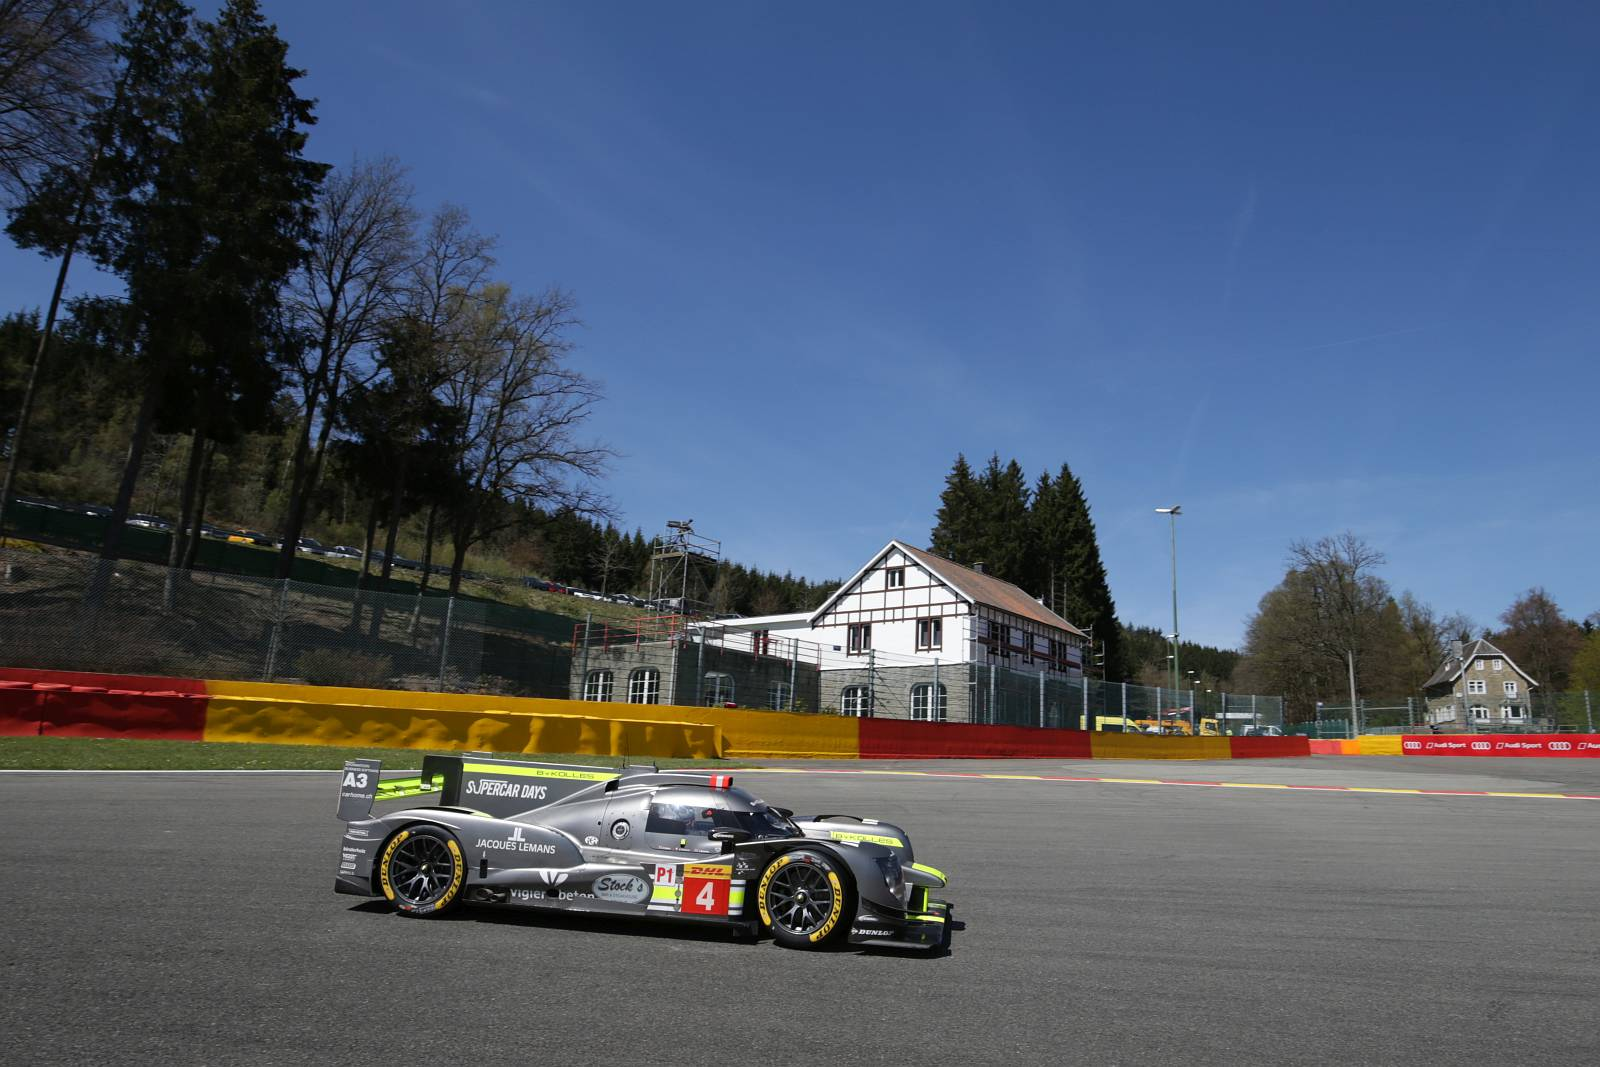 ByKOLLES RACING claims third place in the WEC 6 Hours of Spa-Francorchamps